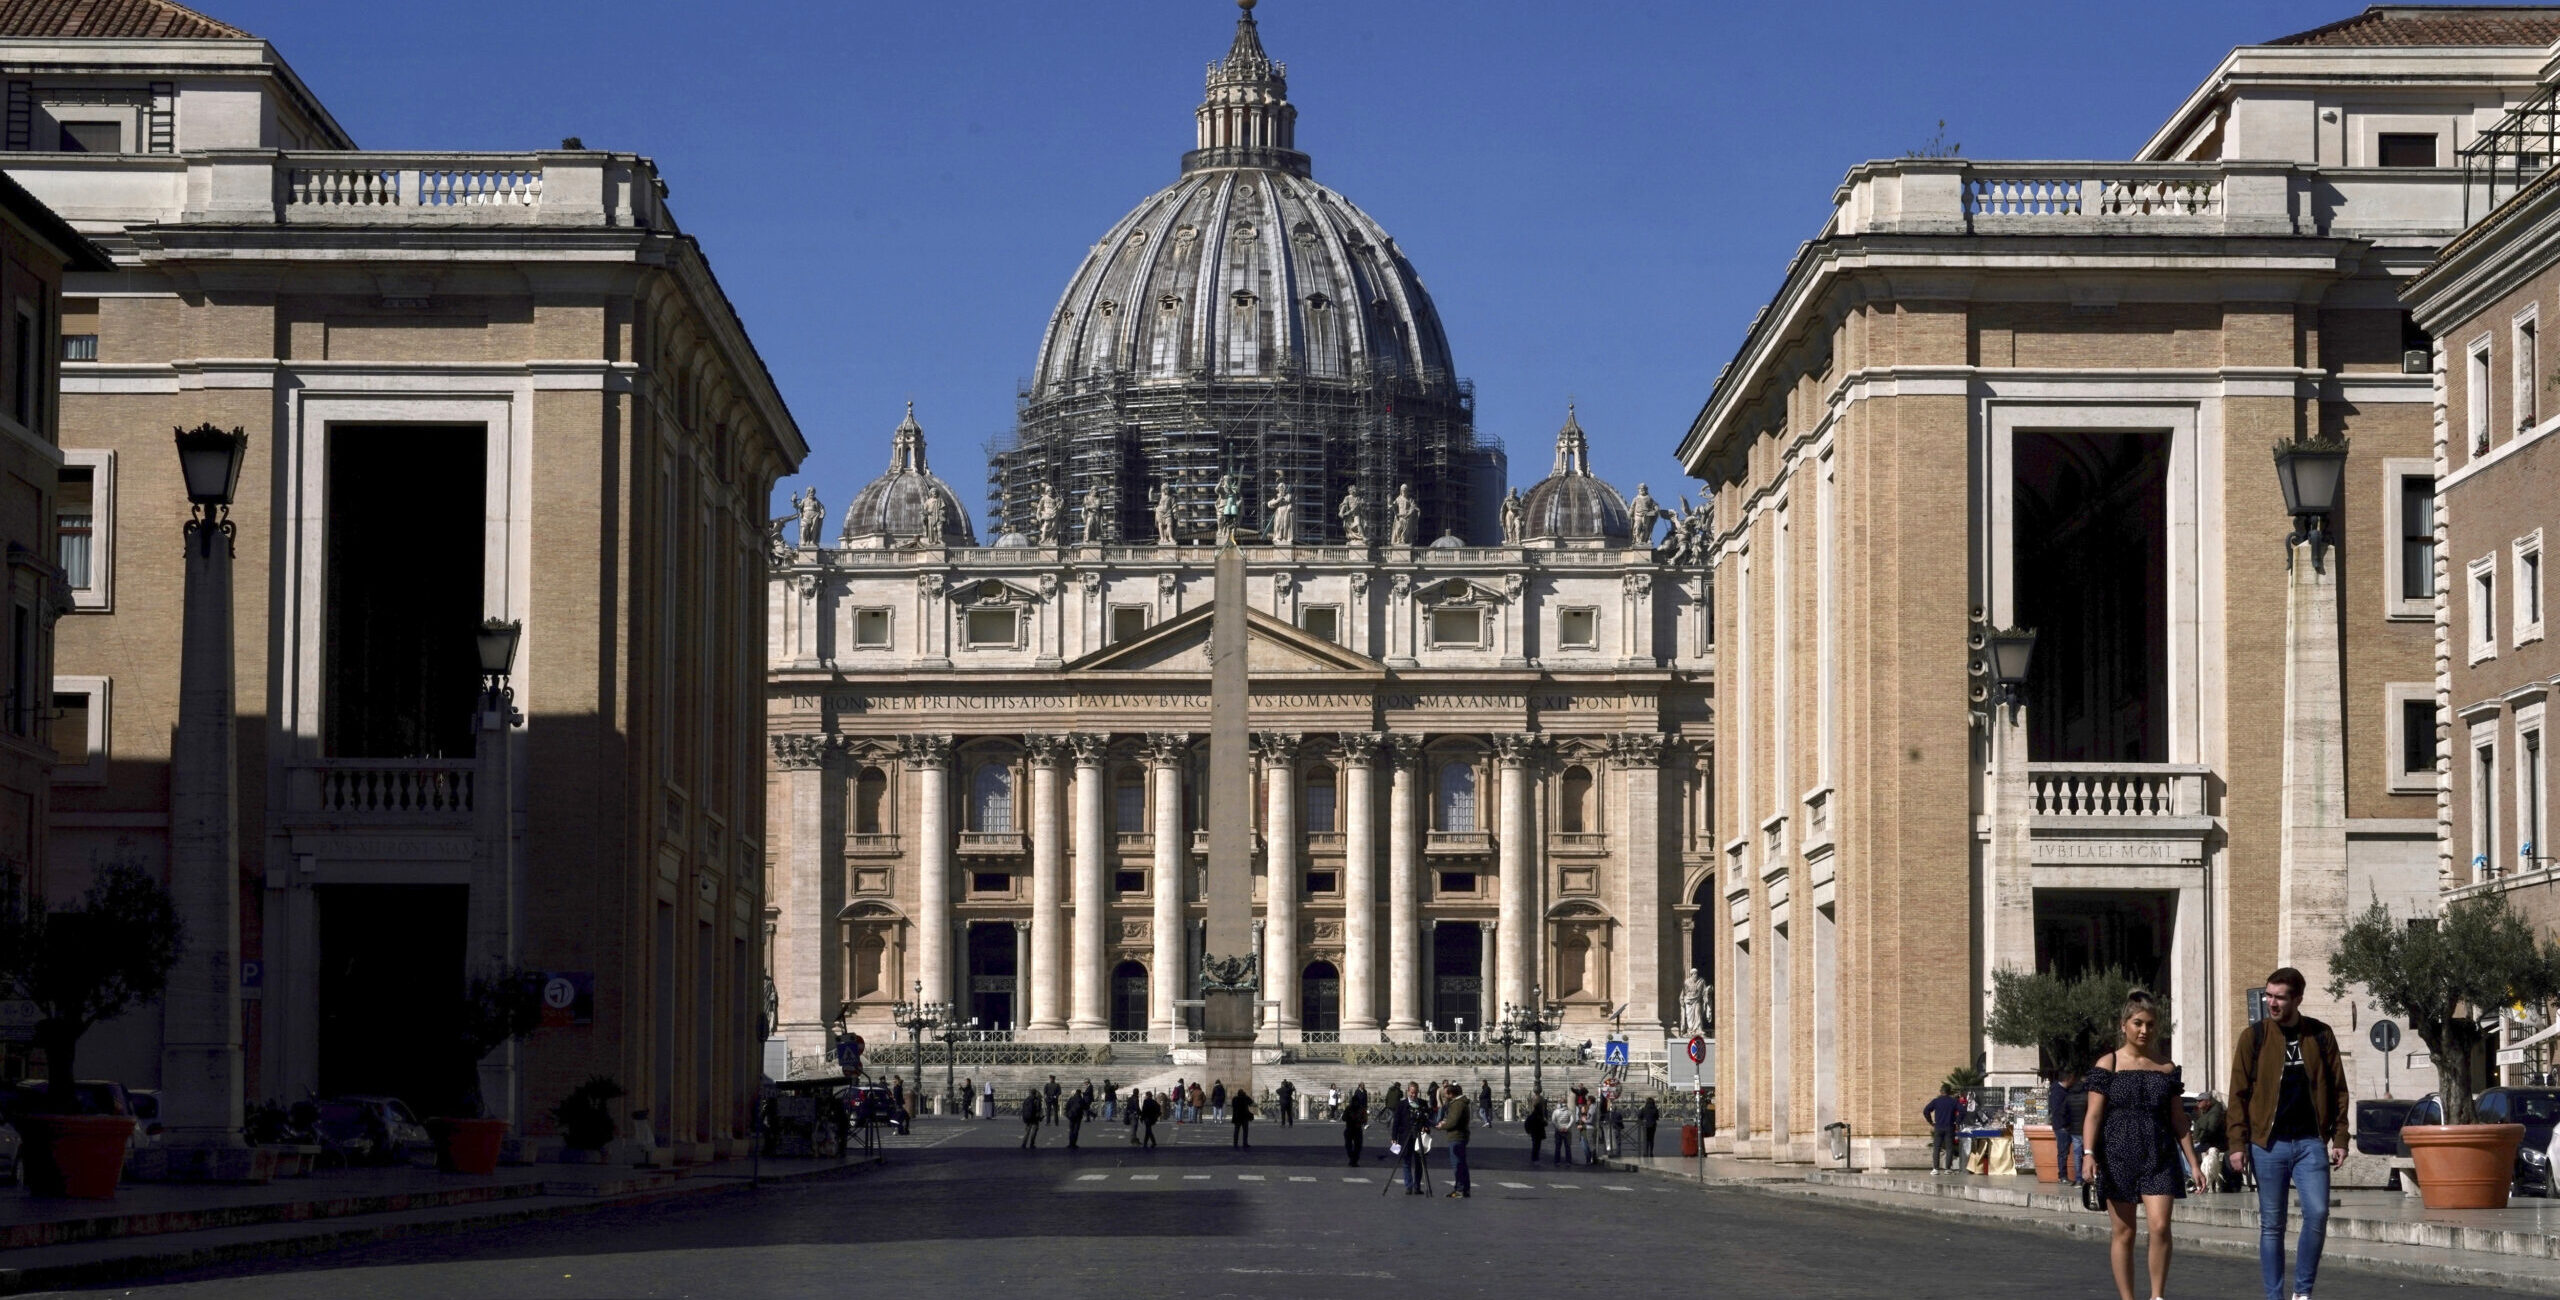 A view of St. Peter's Basilica at the Vatican, Wednesday, March 11, 2020. [AP Image]